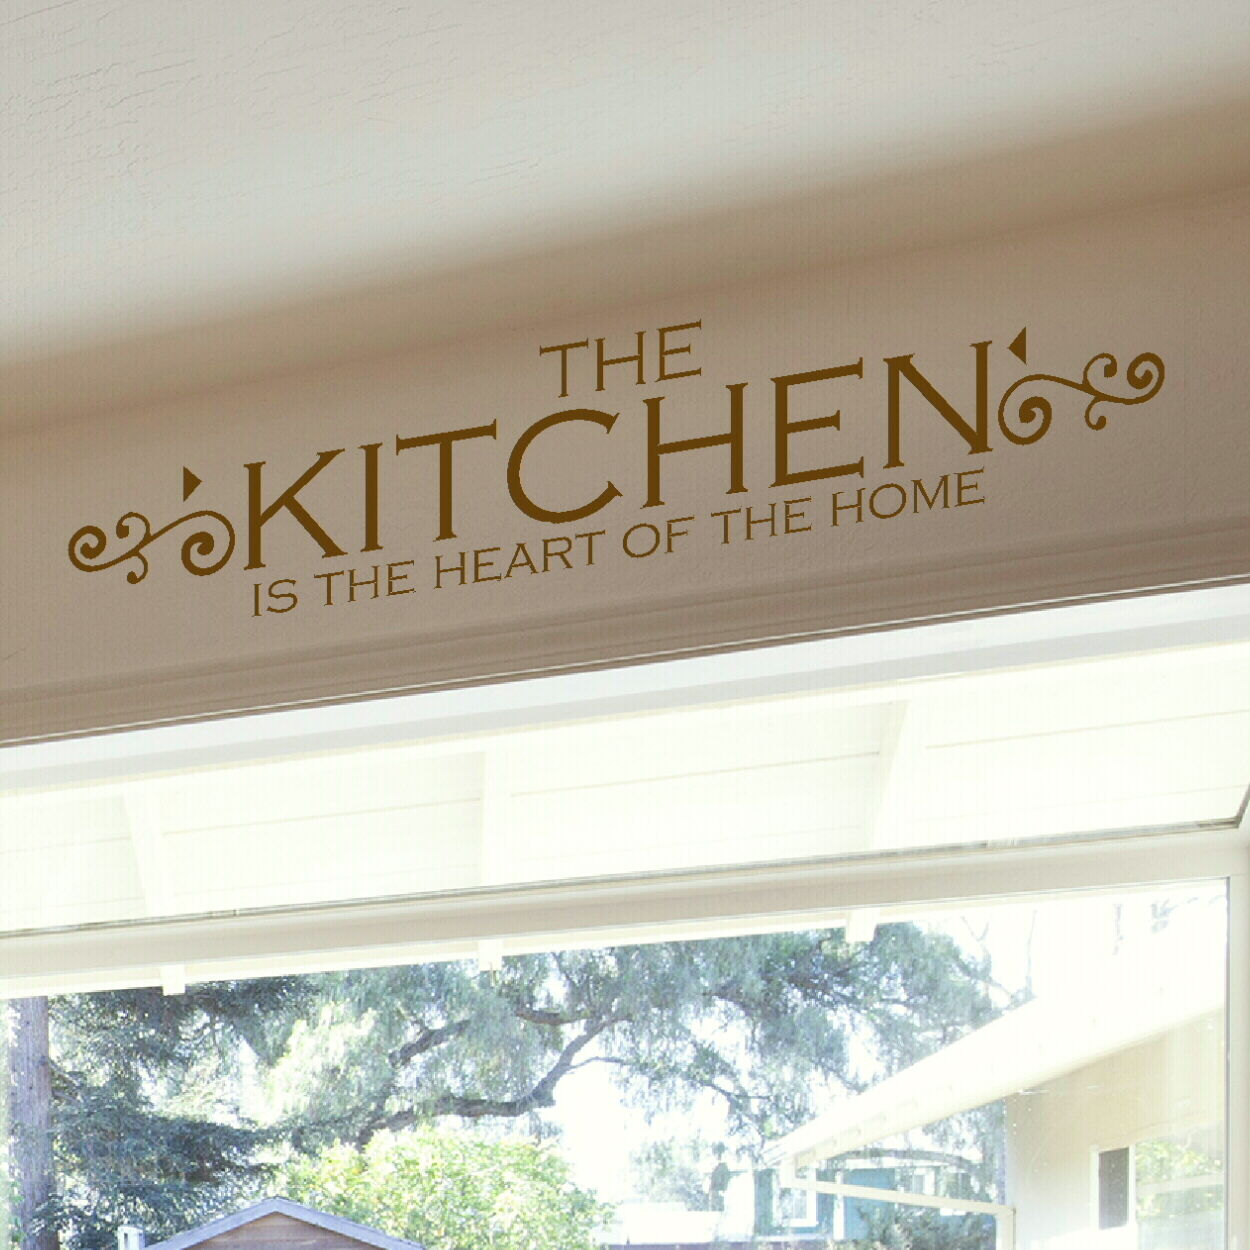 Heart Of The Home Kitchen Wall Sticker Quote Decal Vinyl Transfer Sml Bro Kq15 Eur 0 01